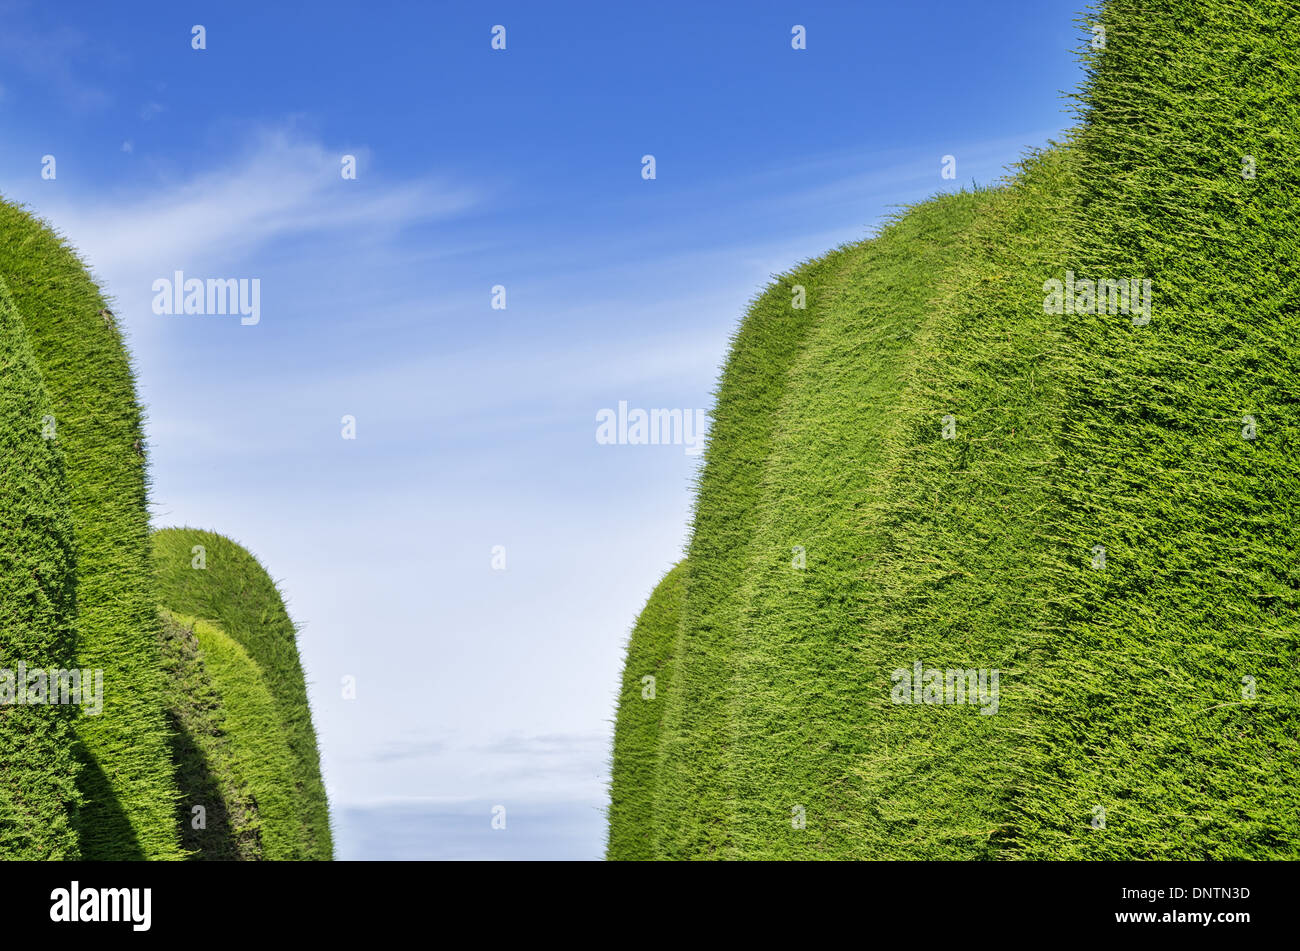 green juniper hedge aisle with sky background - Stock Image